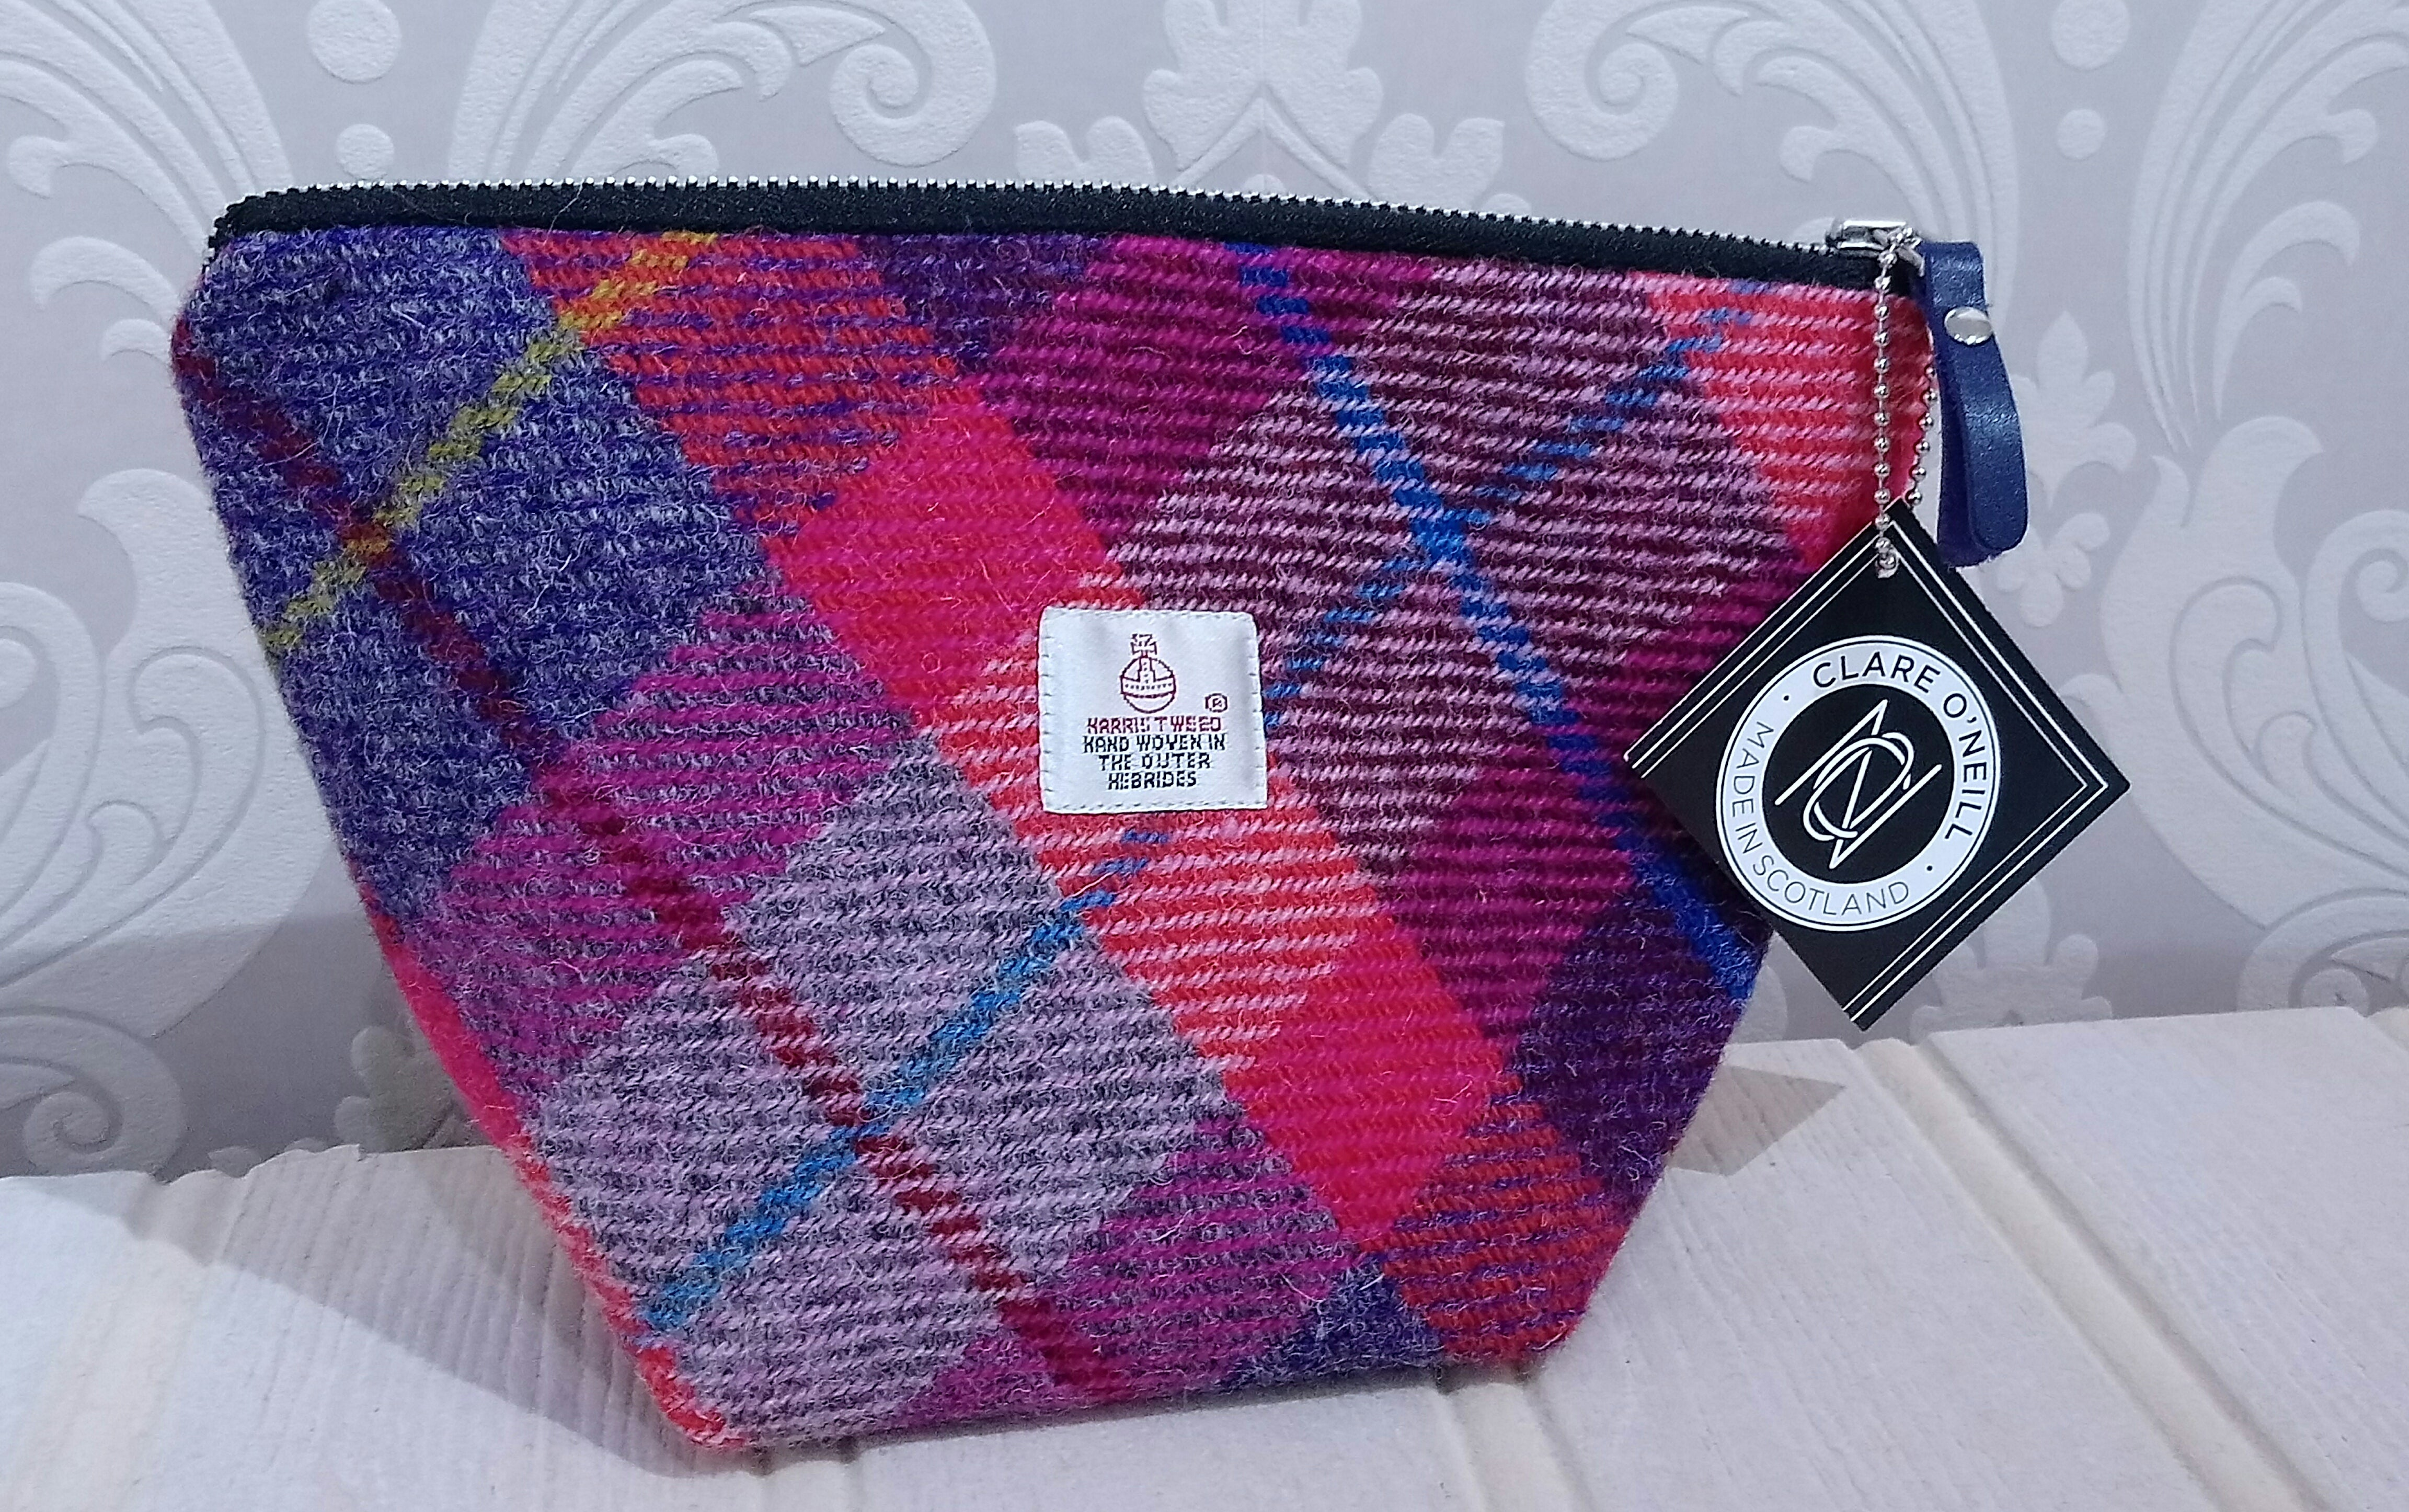 Harris Tweed Small Cosmetic Bag - Made in Scotland by Clare O`Neil Textiles